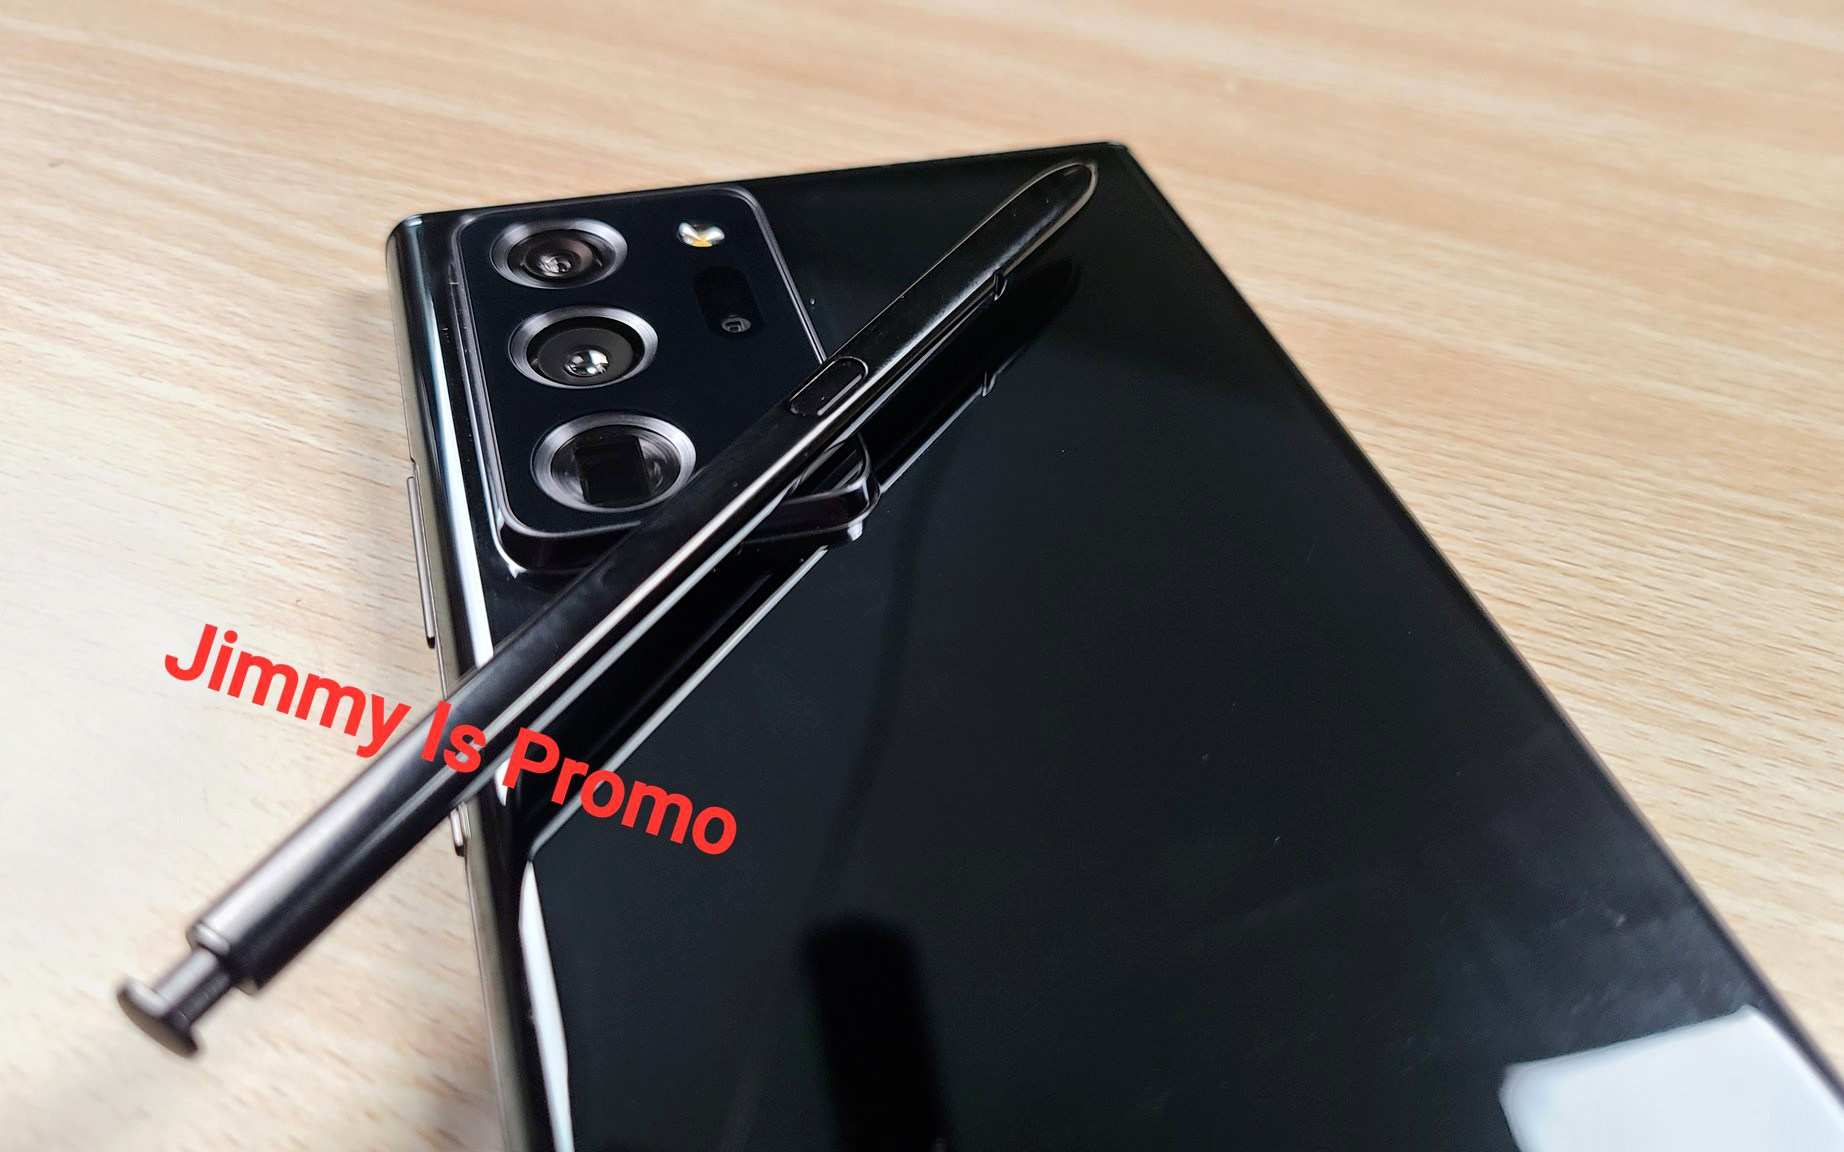 Samsung Galaxy Note 20: Photos show ultra model in the wild